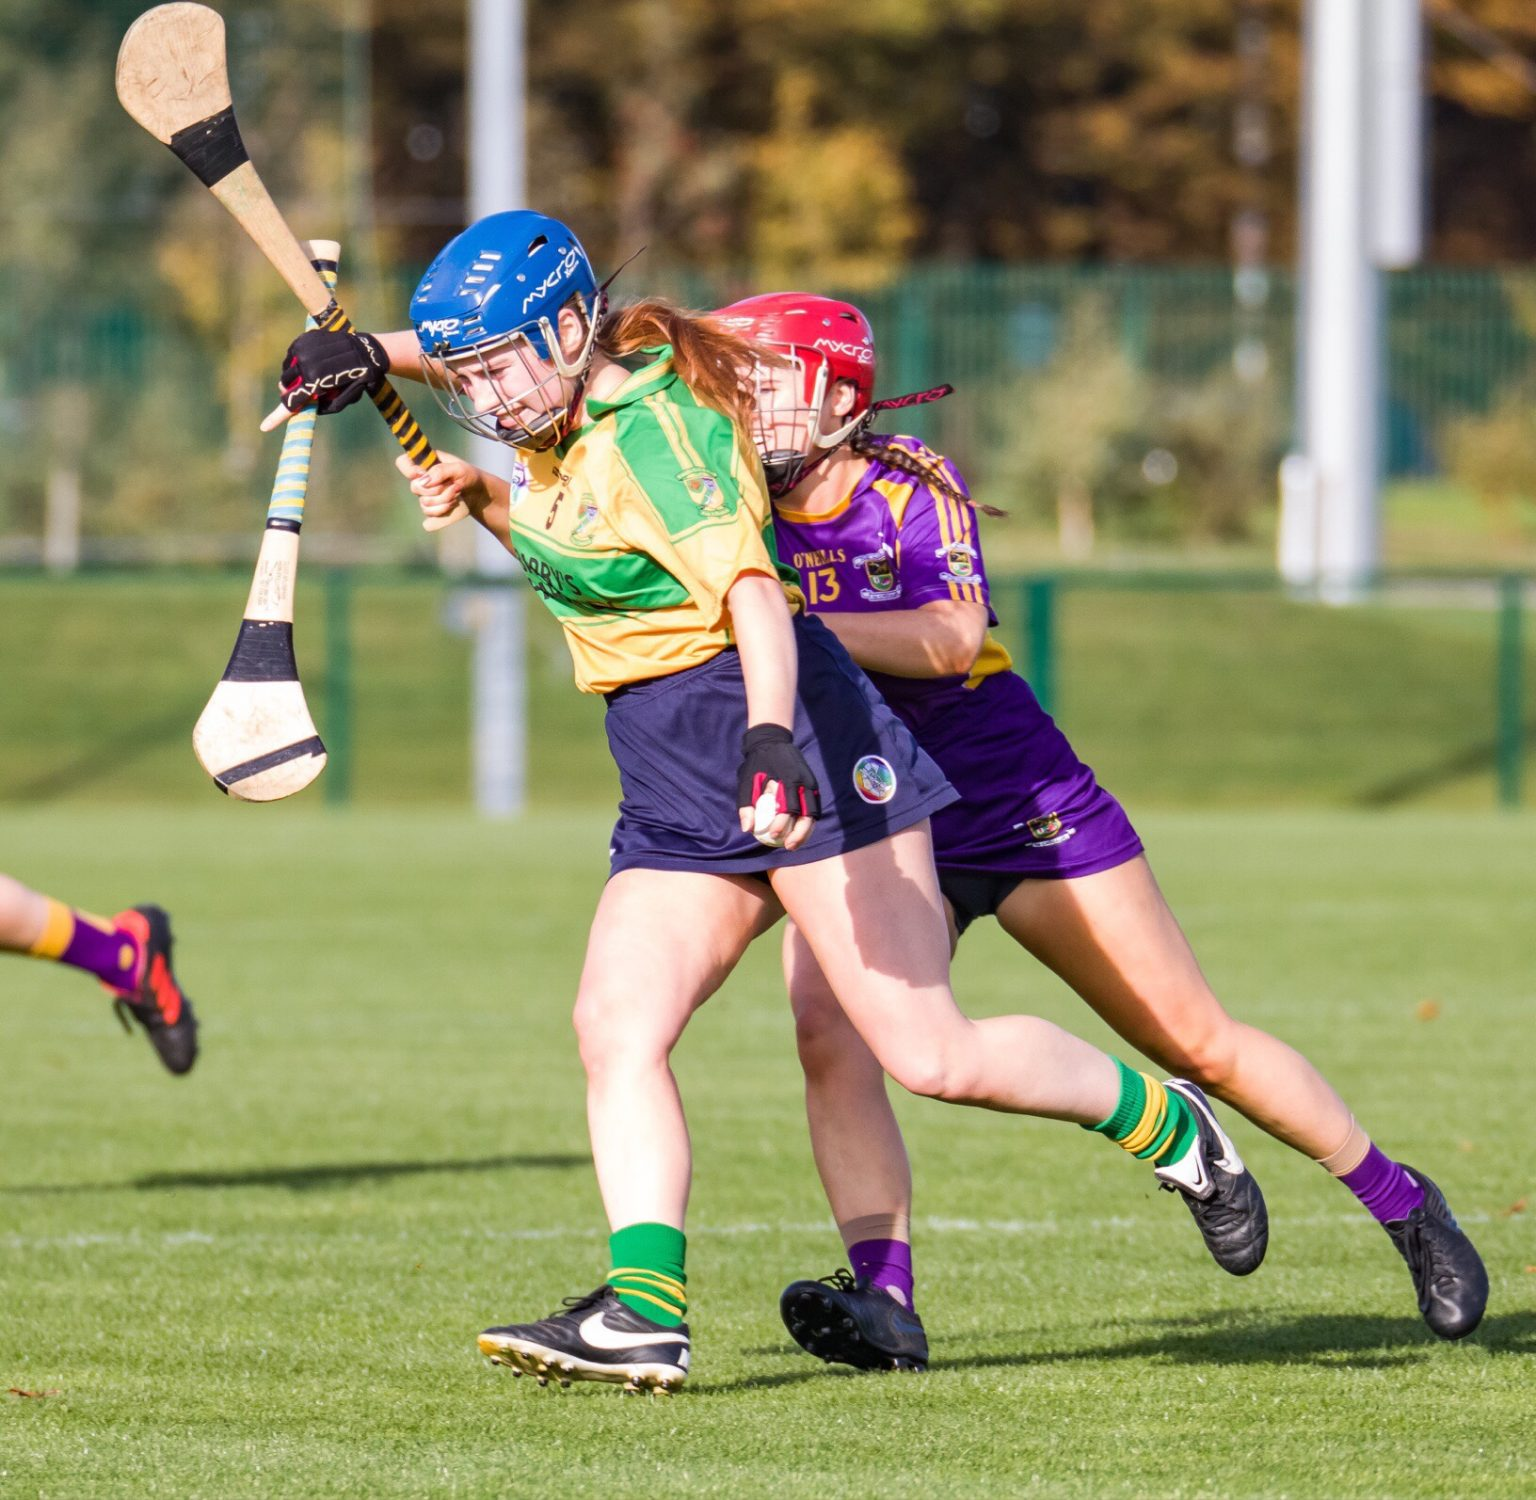 Faughs Celtic Camogie Player in a yellow and green jersey tries to escape the tackle of a Kilmacud player in purple and gold jersey